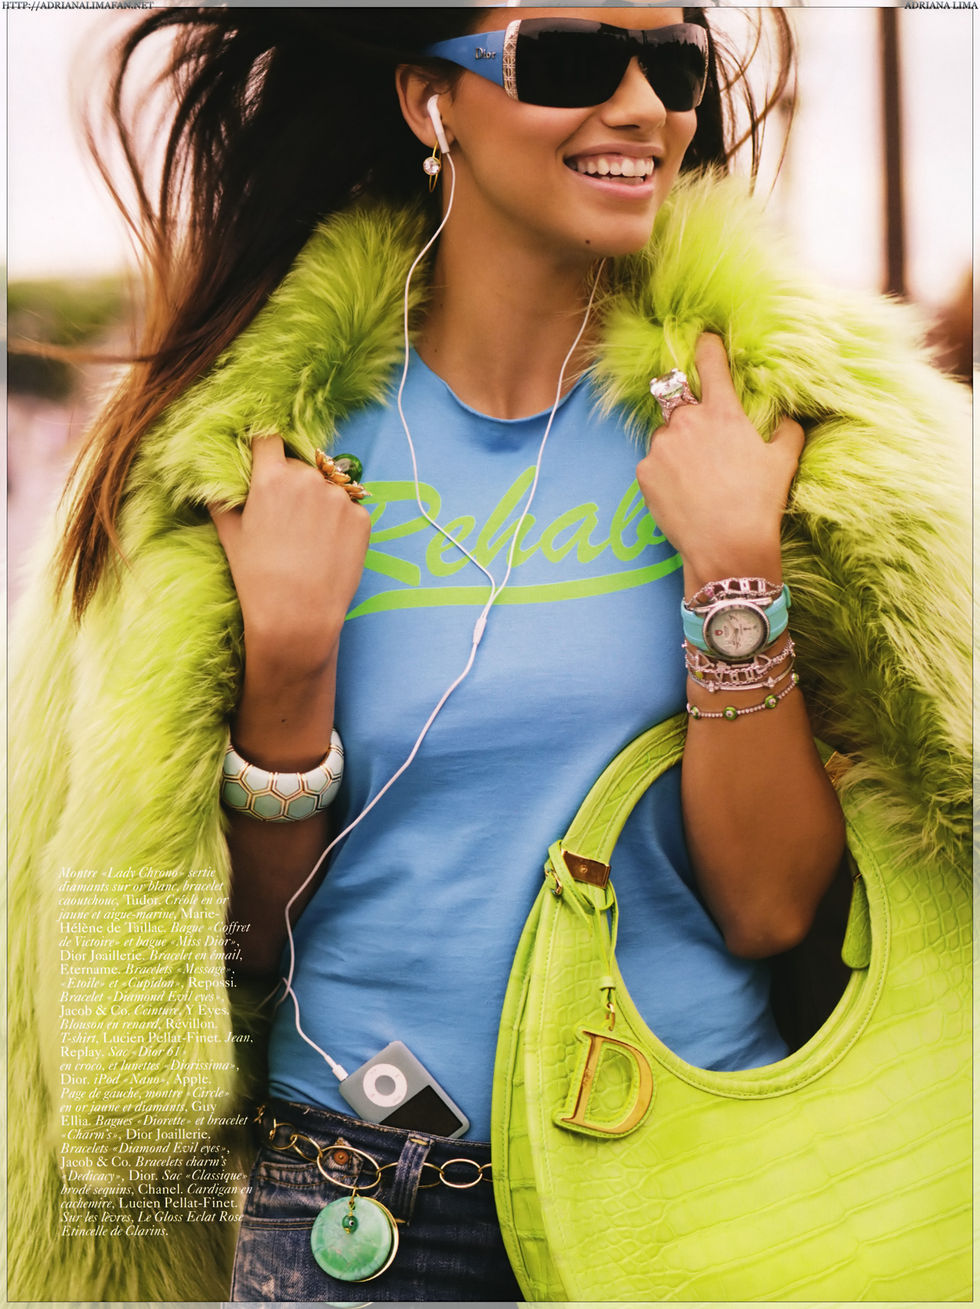 adriana-lima-vogue-paris-magazine-november-2008-01